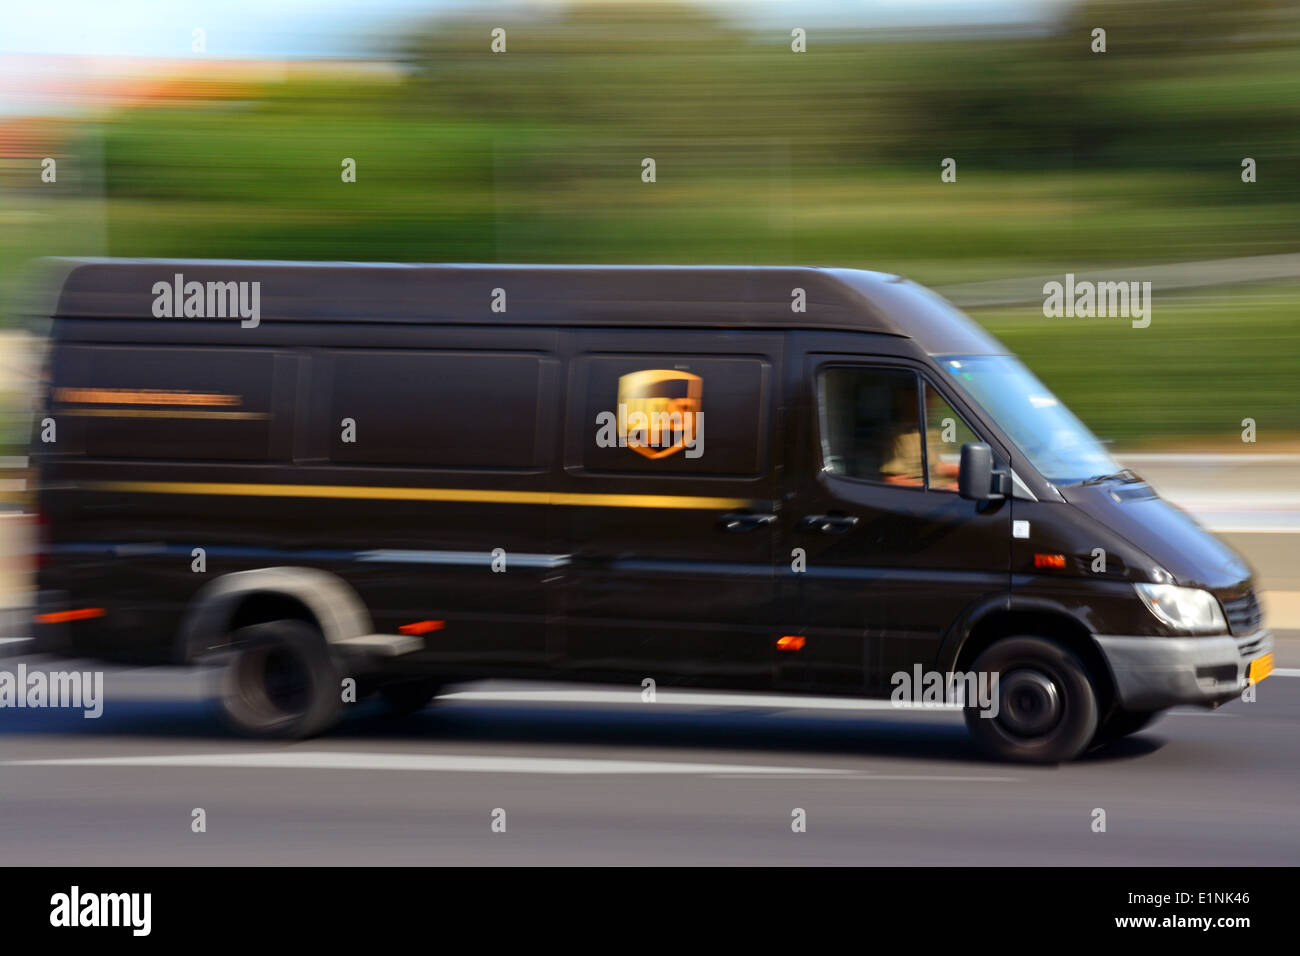 UPS car in blurred motion - Stock Image